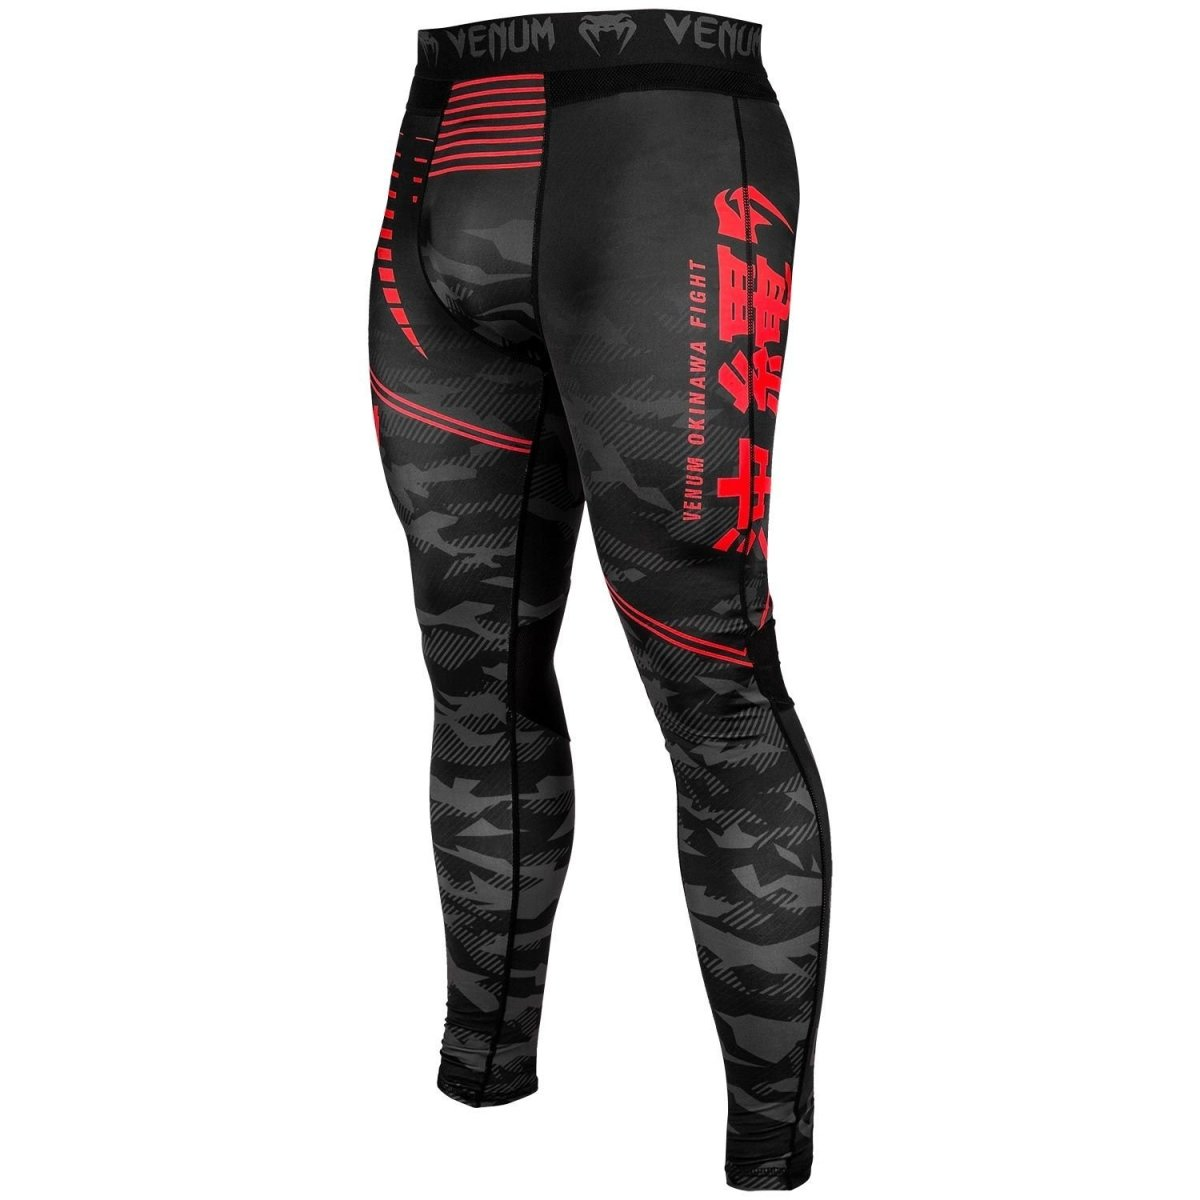 VENUM SPATS OKINAWA 2.0 BLACK/RED - MSM FIGHT SHOPVENUM